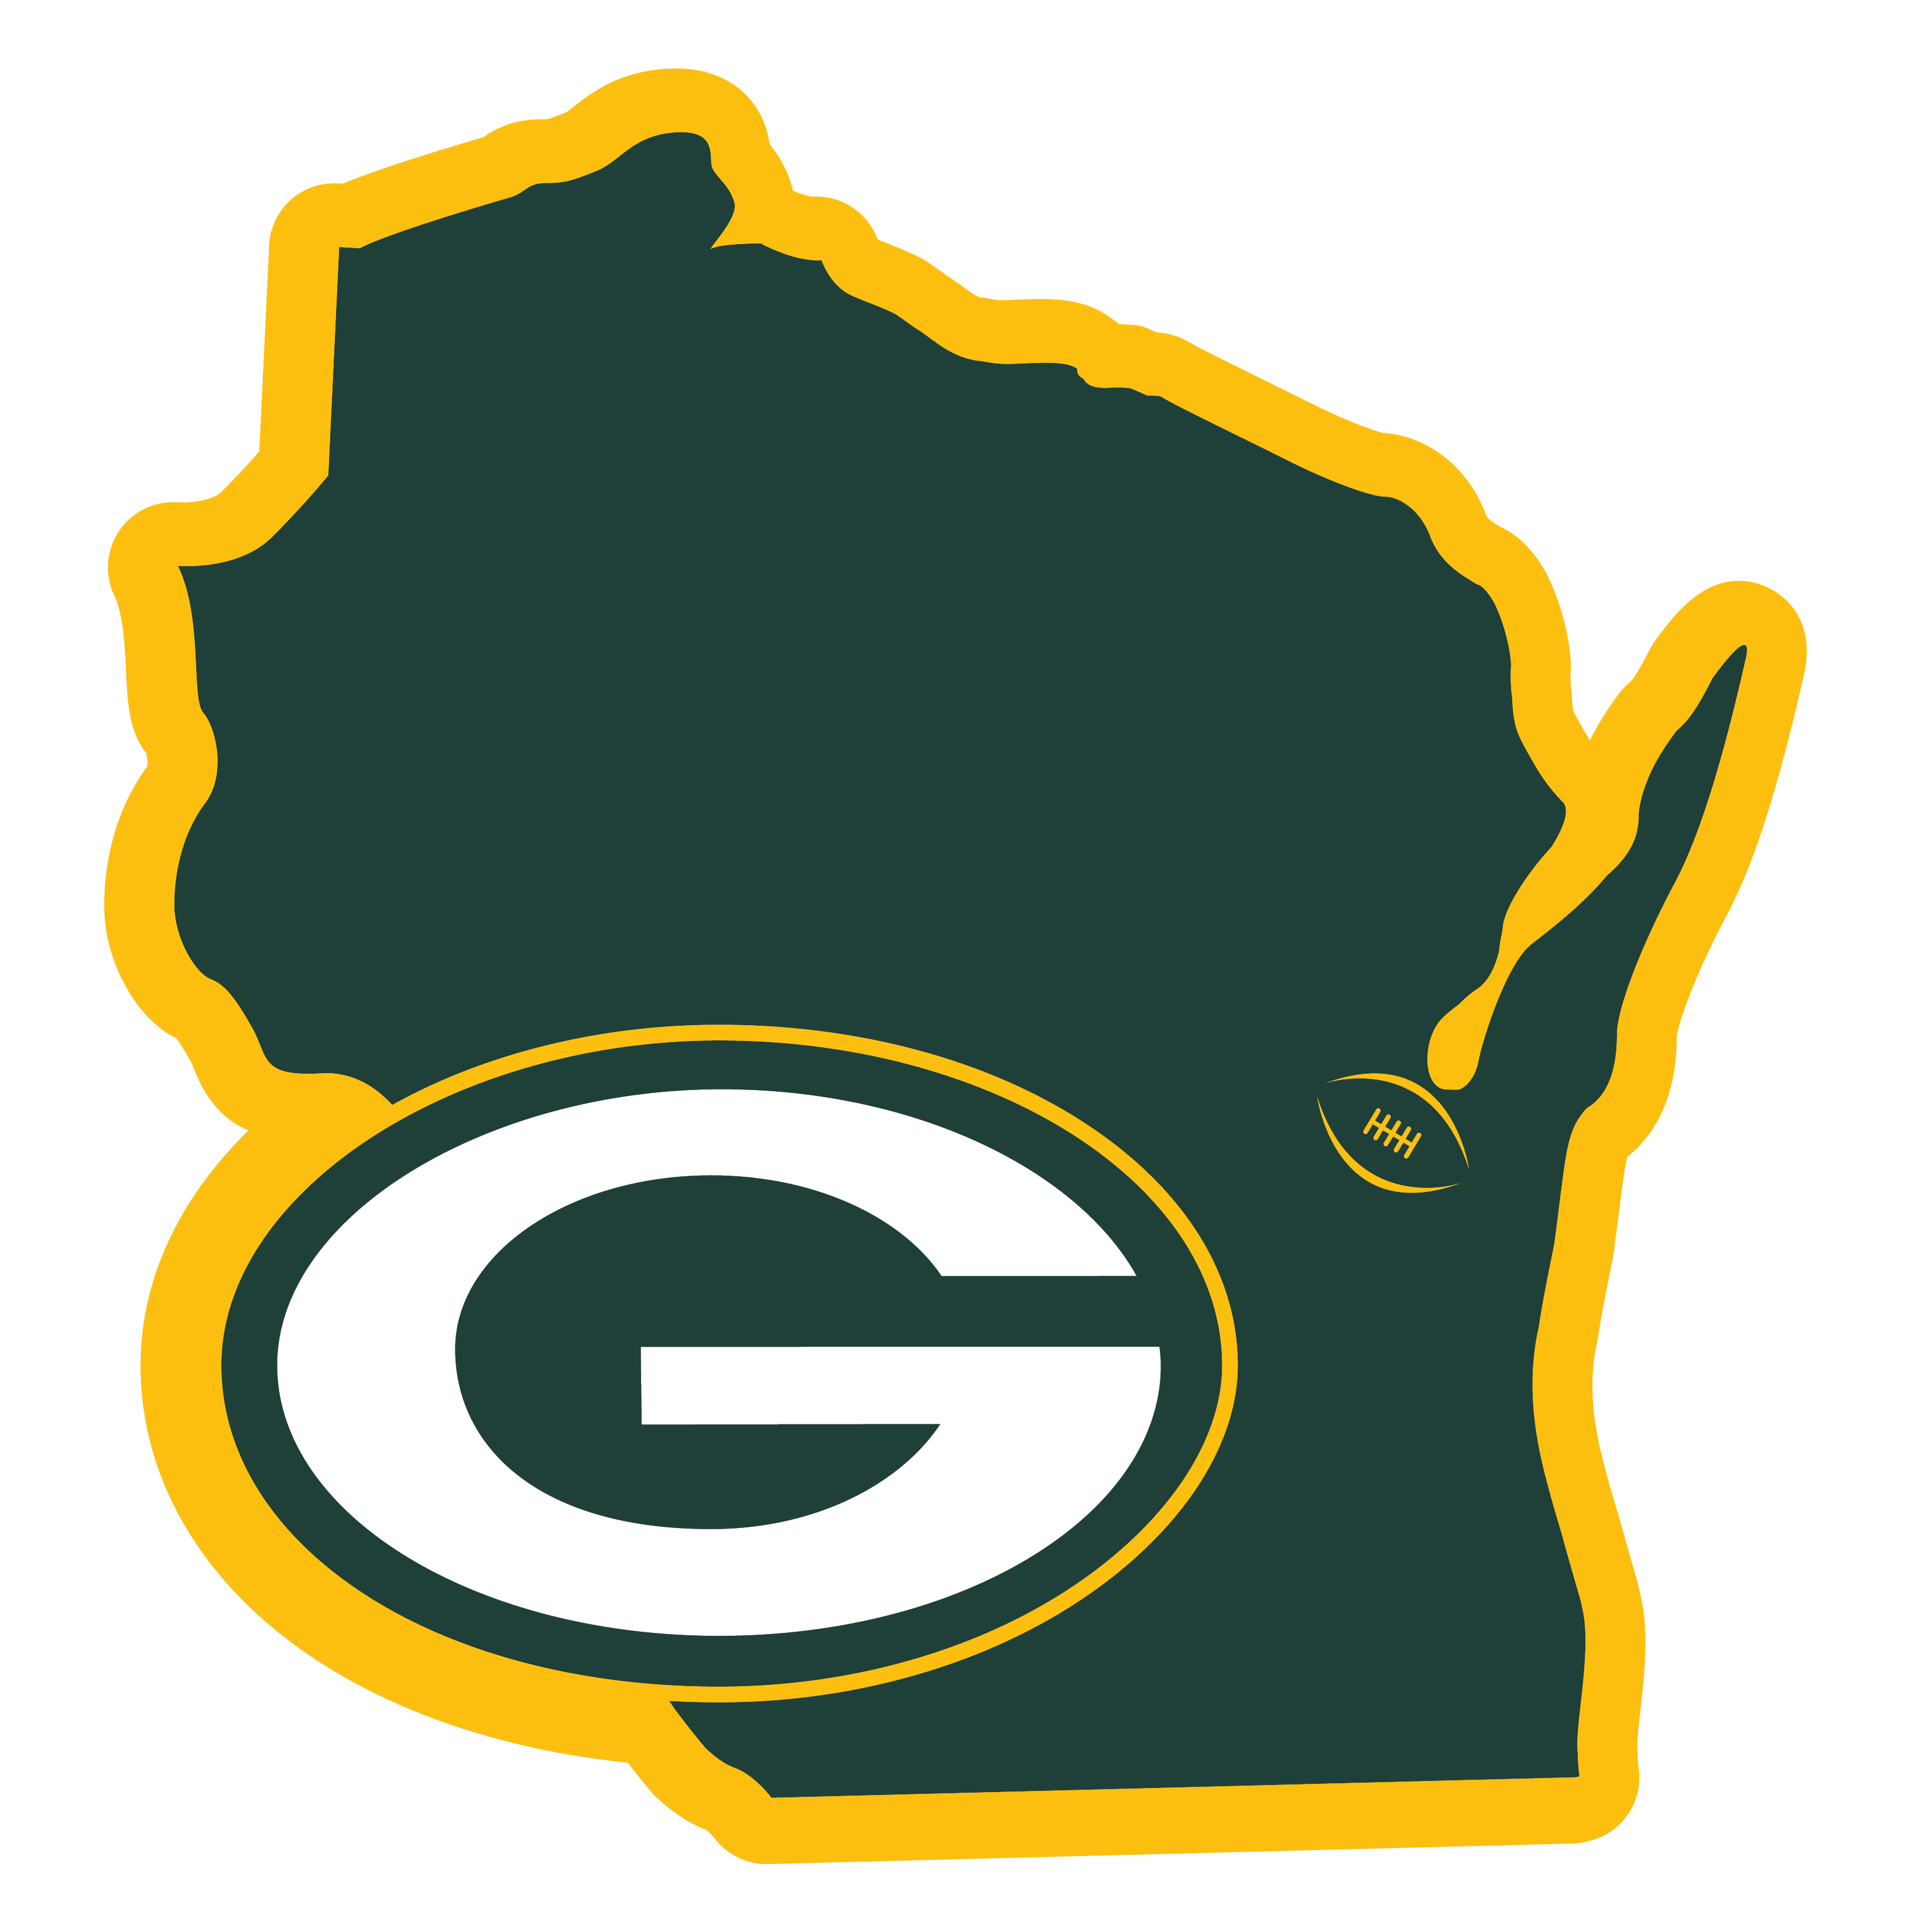 Green Bay Packers Home State 11 Inch Magnet - Whether you are caravaning to the game or having a tailgate party make sure you car is wearing its fan gear with our extra large, 11 inch Green Bay Packers home state magnets. These striking magnets can be easily placed on for game day and removed without the residue left by decals. The design features a bright state outline with the location of the team highlighted with a football and a large team logo.